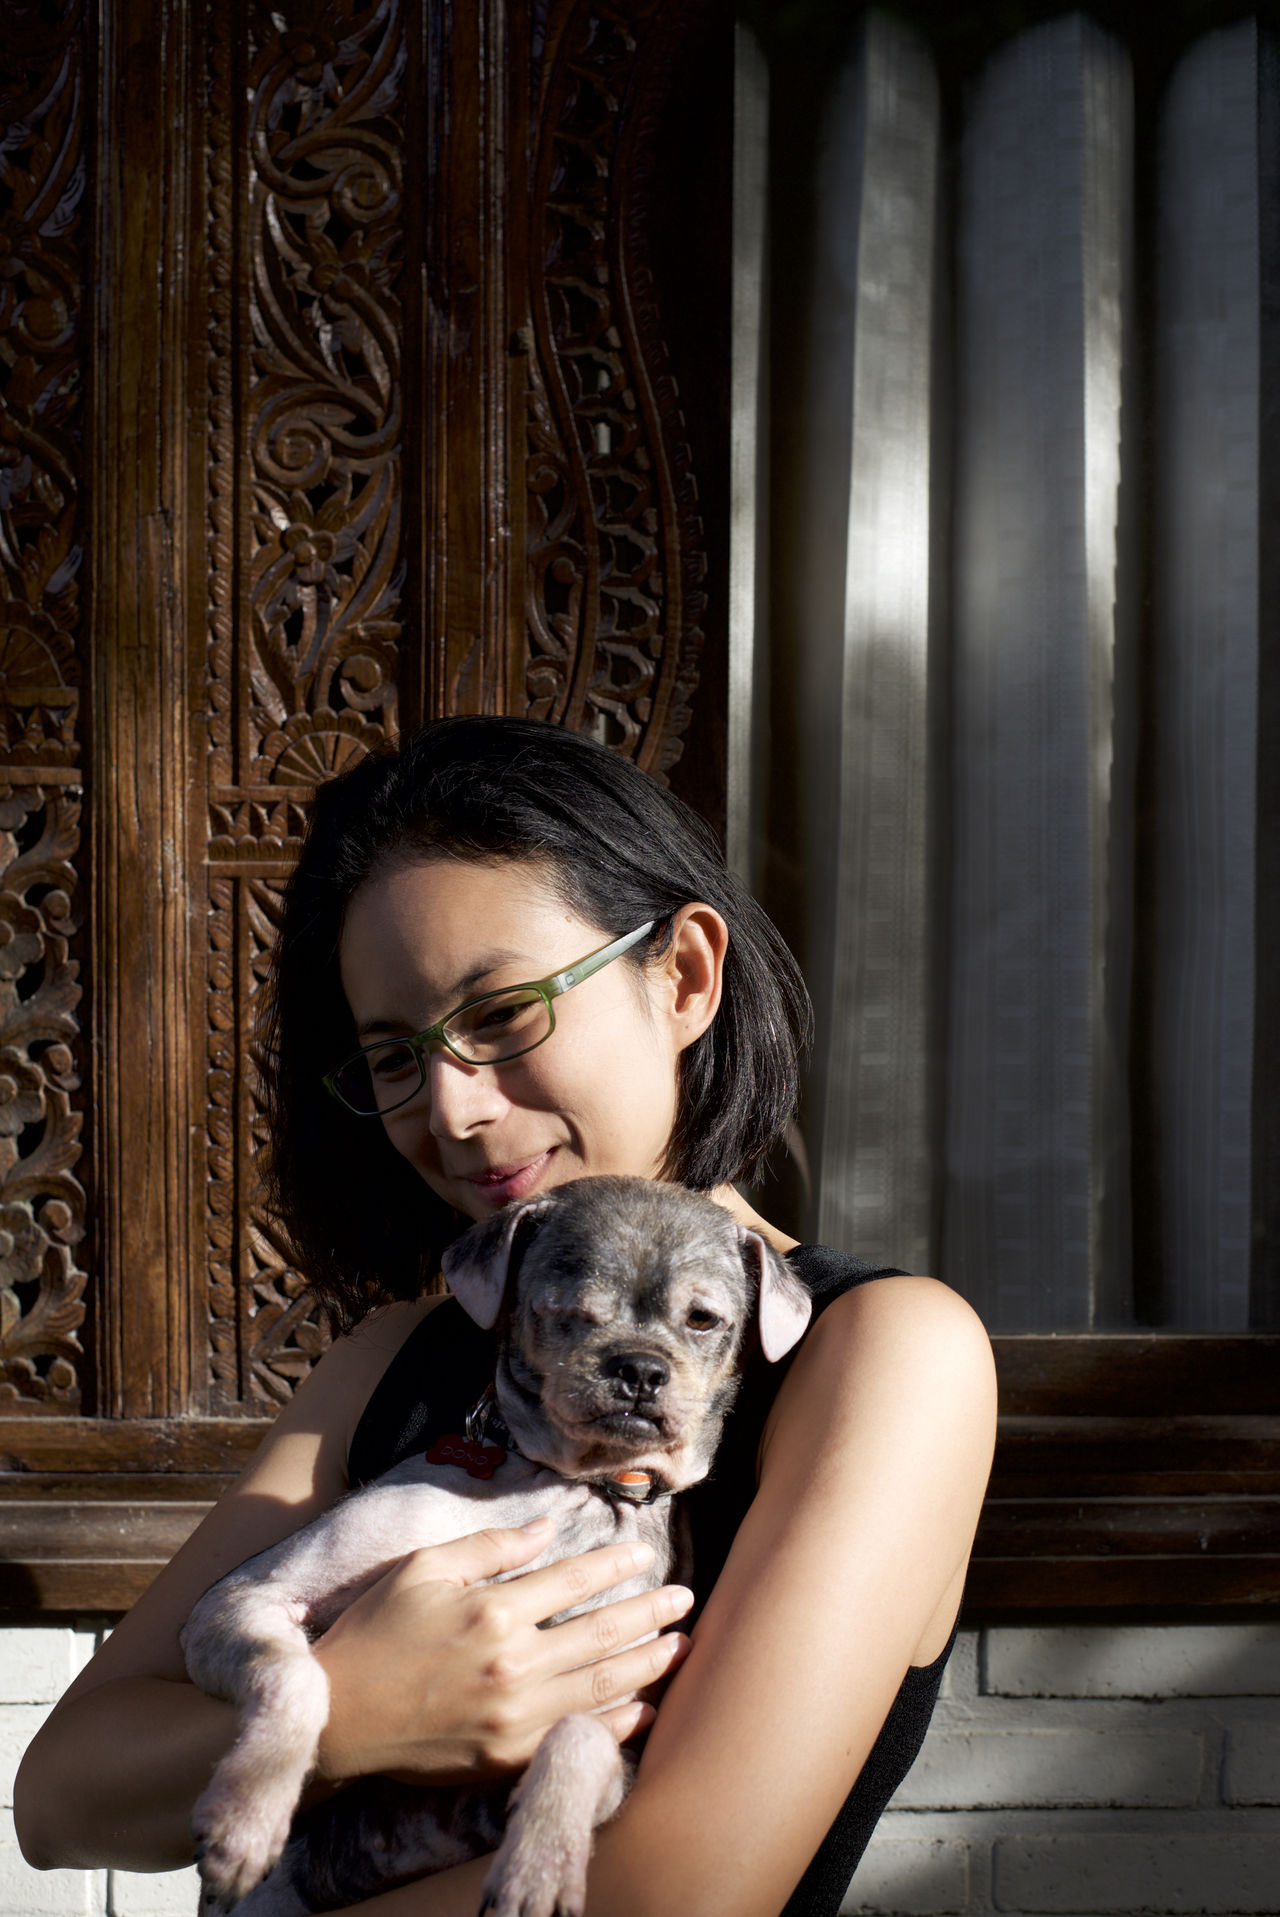 Asian Girl Bali Balinese Architecture Beautiful Woman Black Hair Brick Wall Copy Space Head And Shoulders Light And Shadow Moody Natural Light Portrait Place Of Heart Portrait Of A Woman The Portraitist - 2017 EyeEm Awards Waist Up White Wall Window Rescued Dog